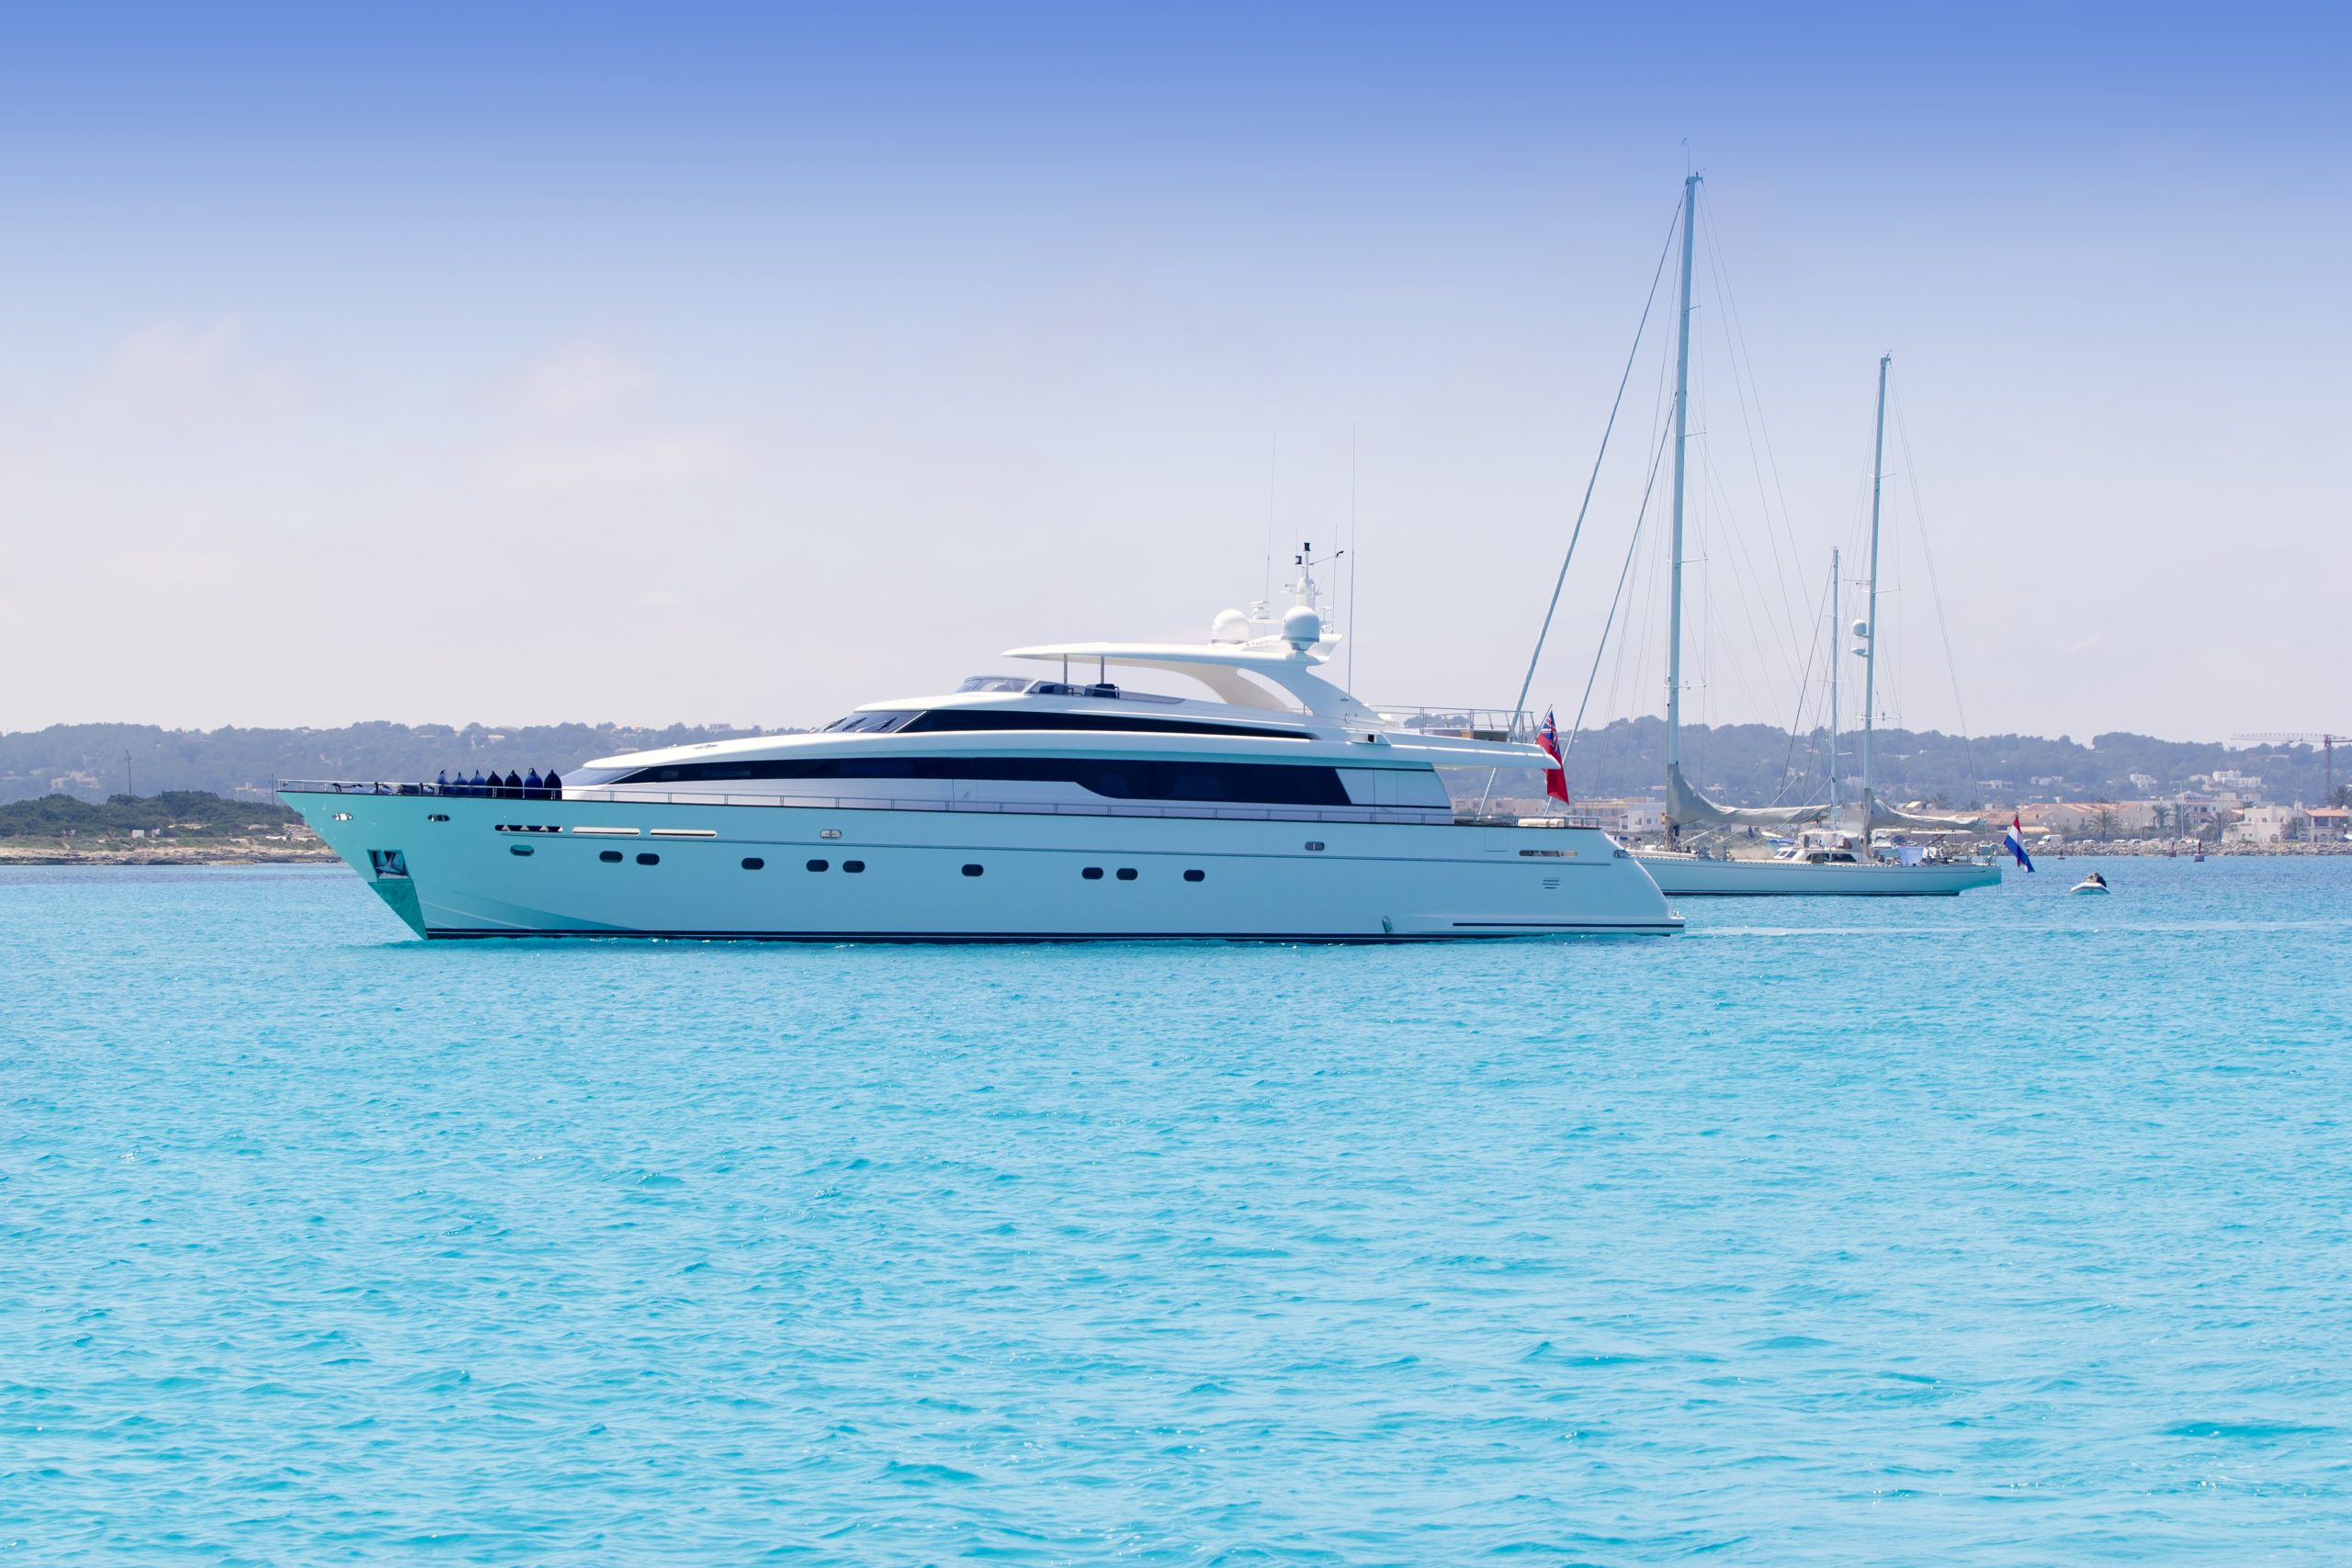 Tips When Renting a Yacht in Playa del Carmen